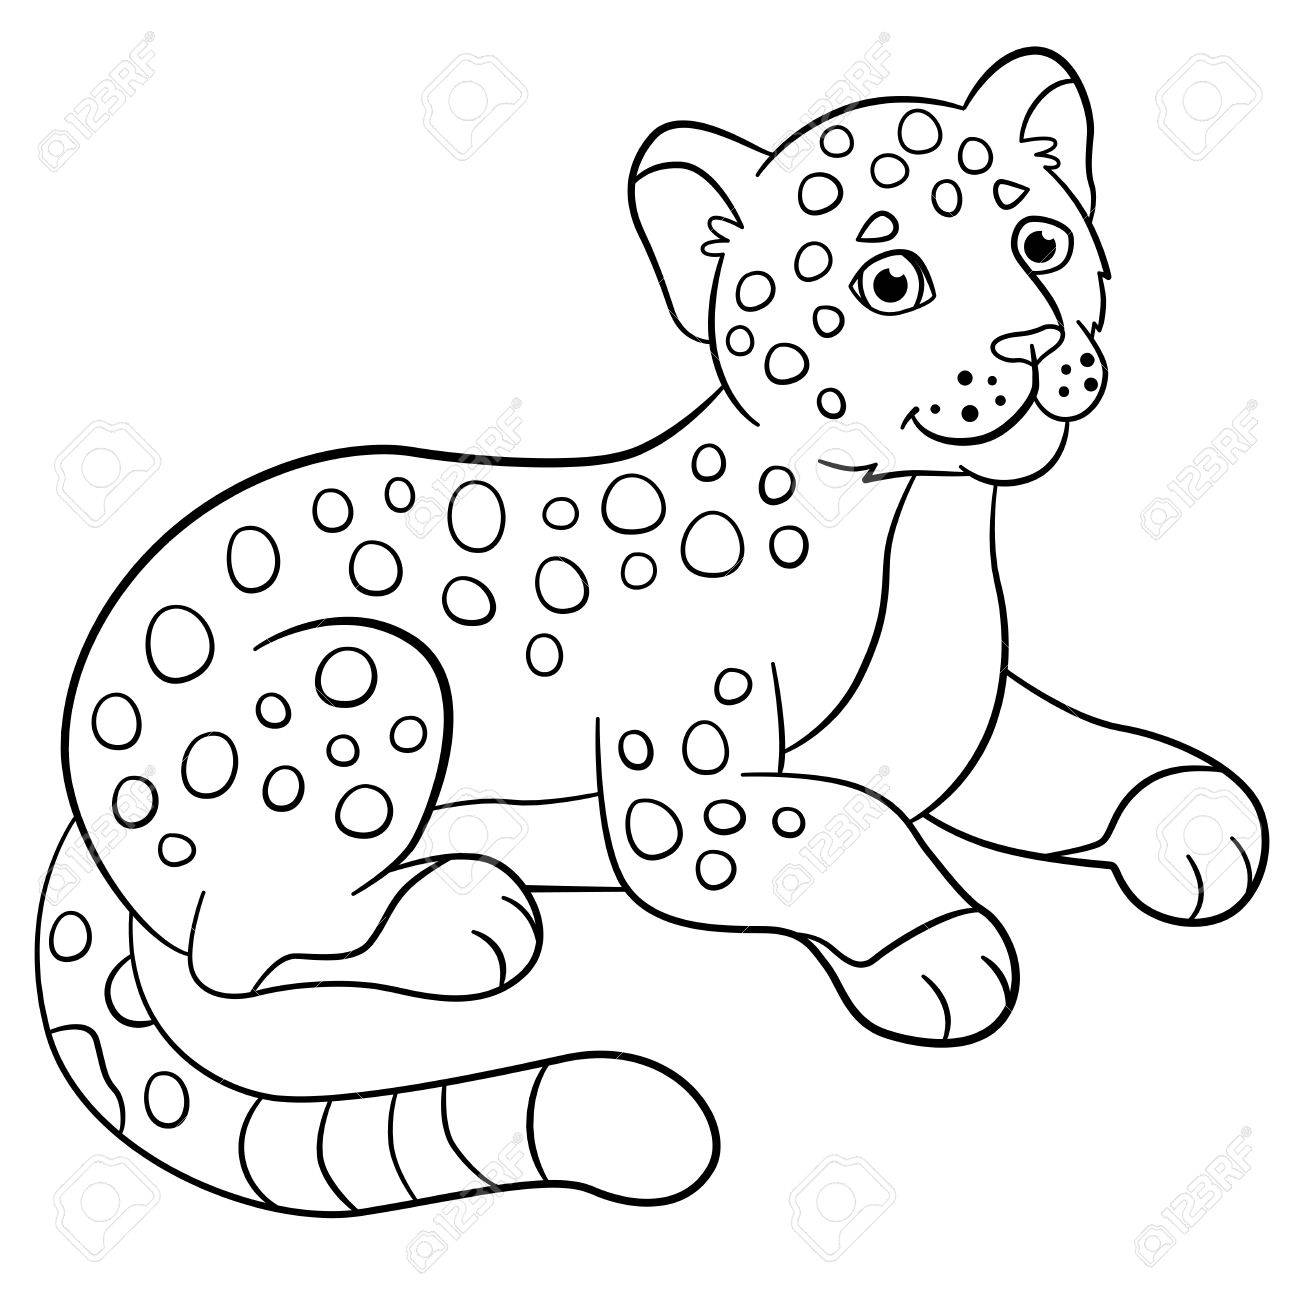 Coloring Pages. Little Cute Spotted Baby Jaguar Smiles. Royalty Free ...